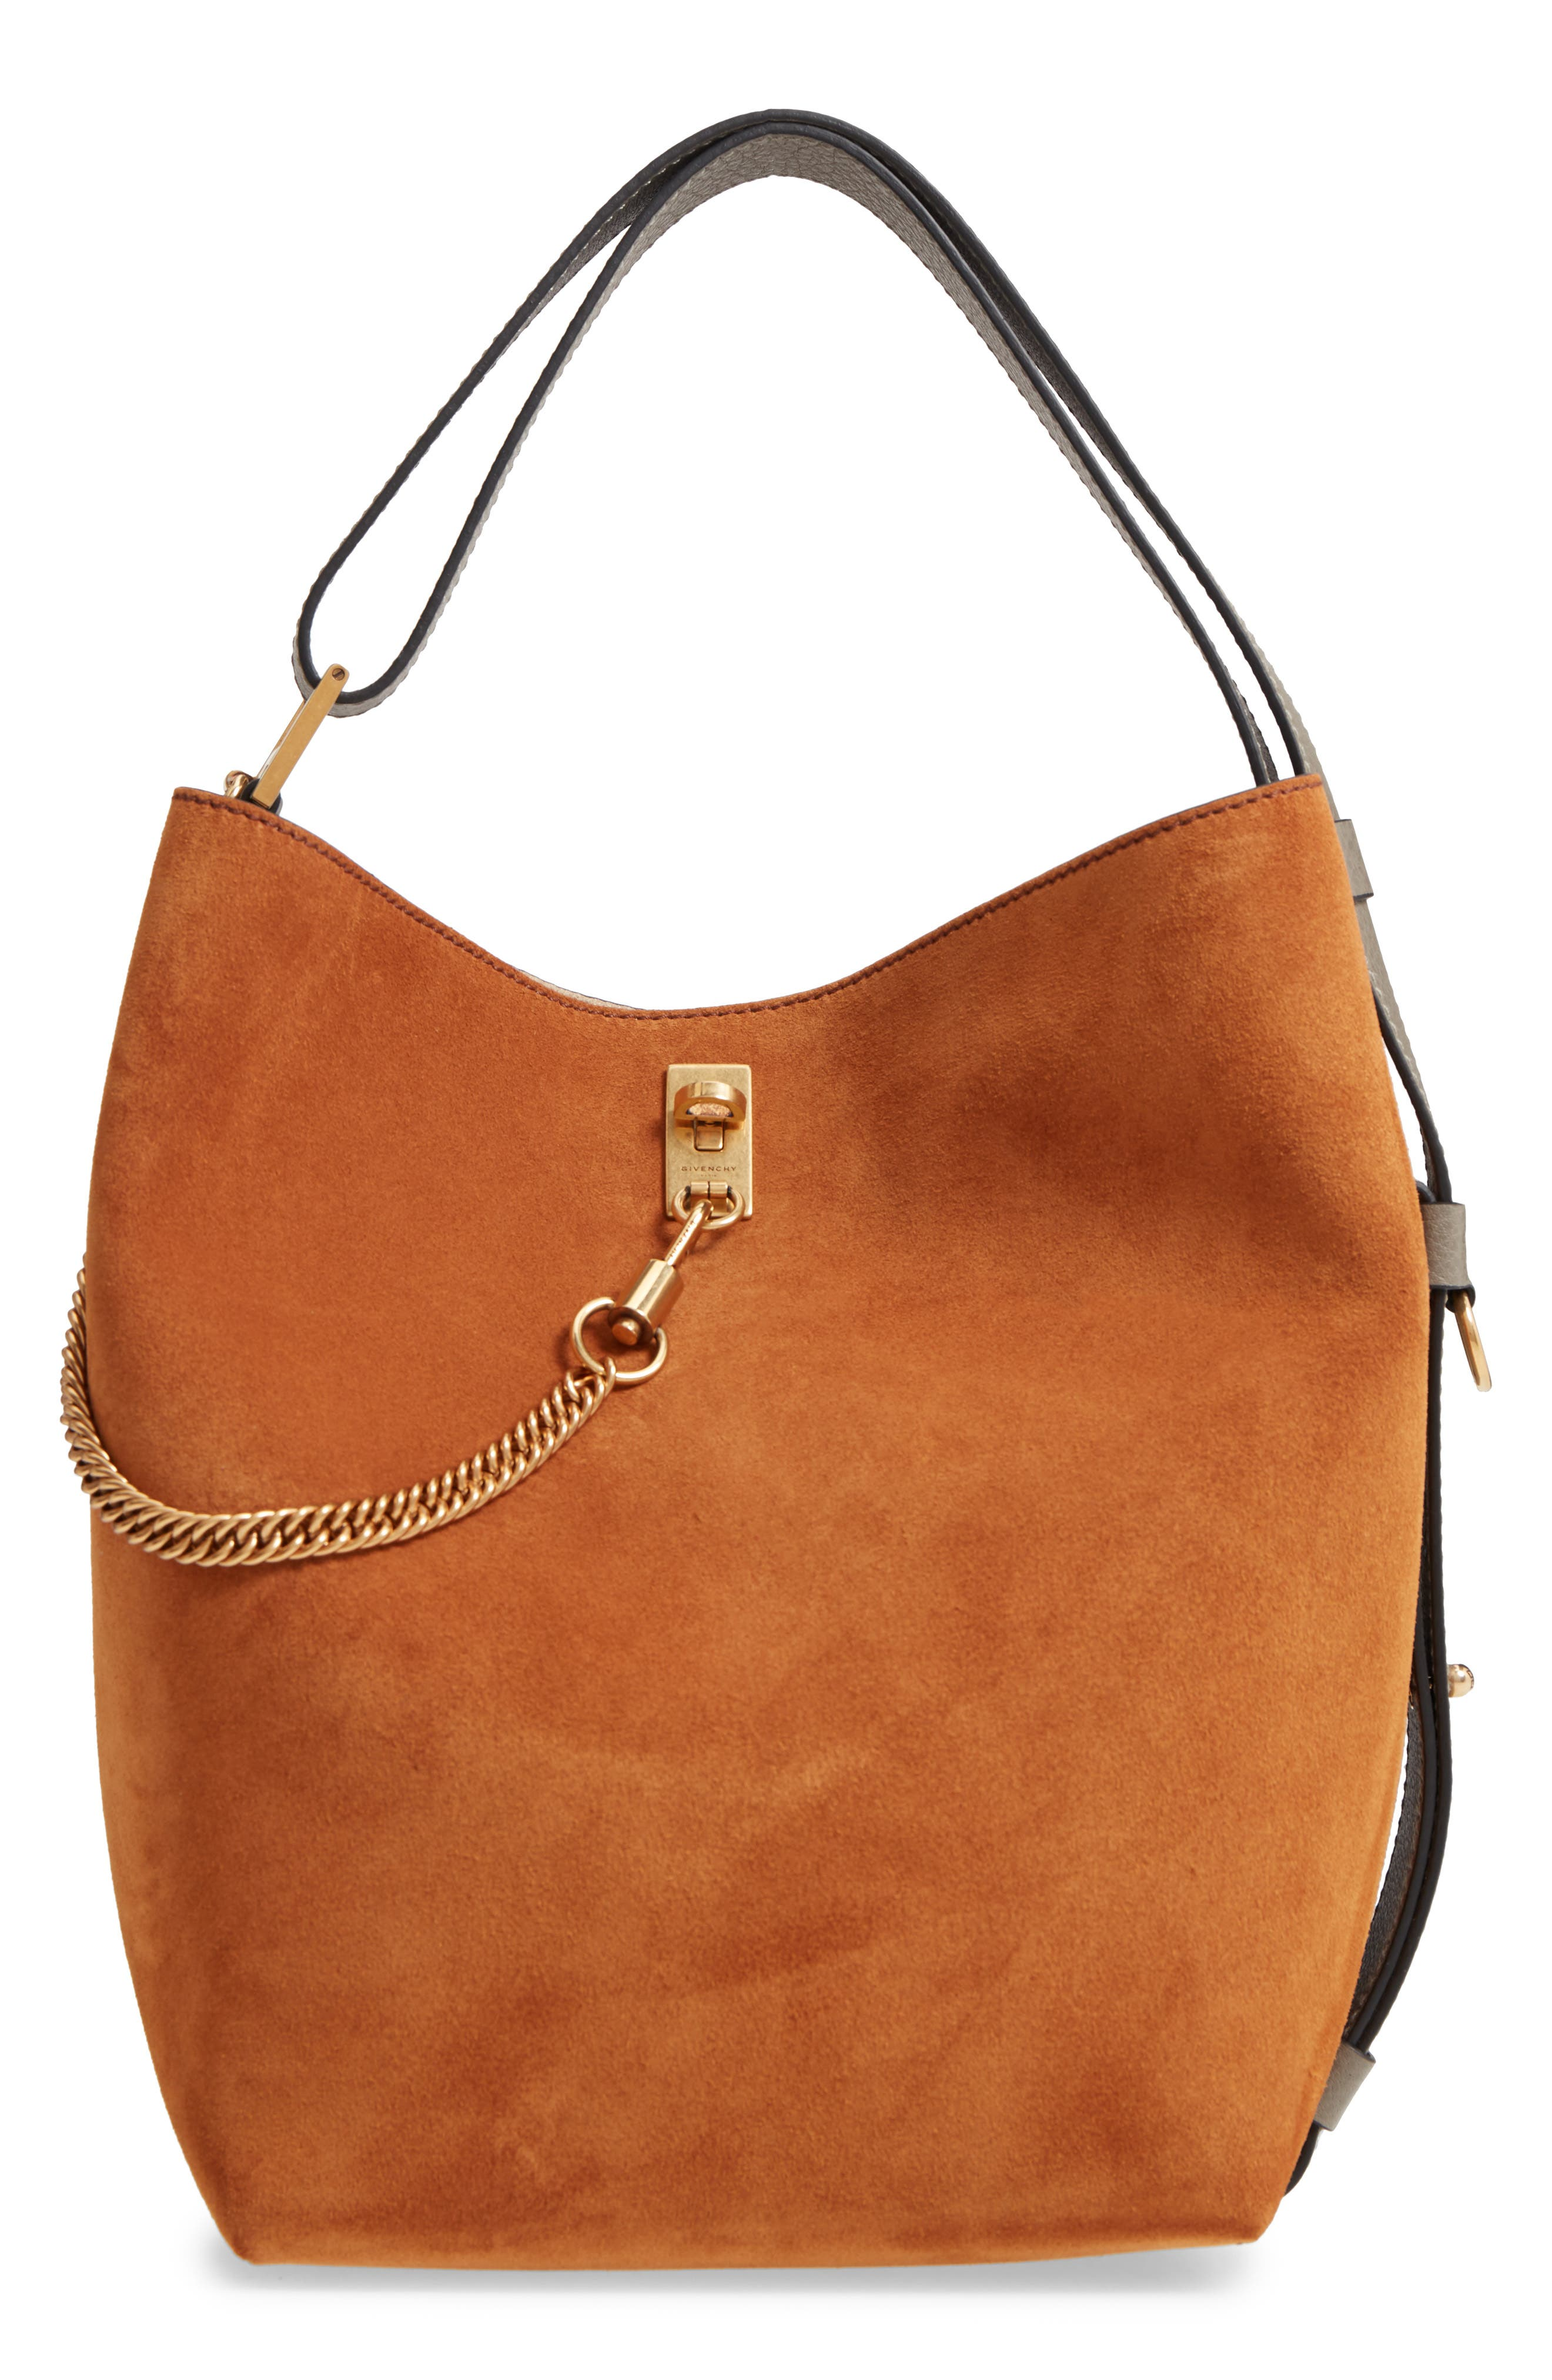 Medium GV Lambskin Bucket Bag,                             Main thumbnail 1, color,                             BLACK/ CHESTNUT